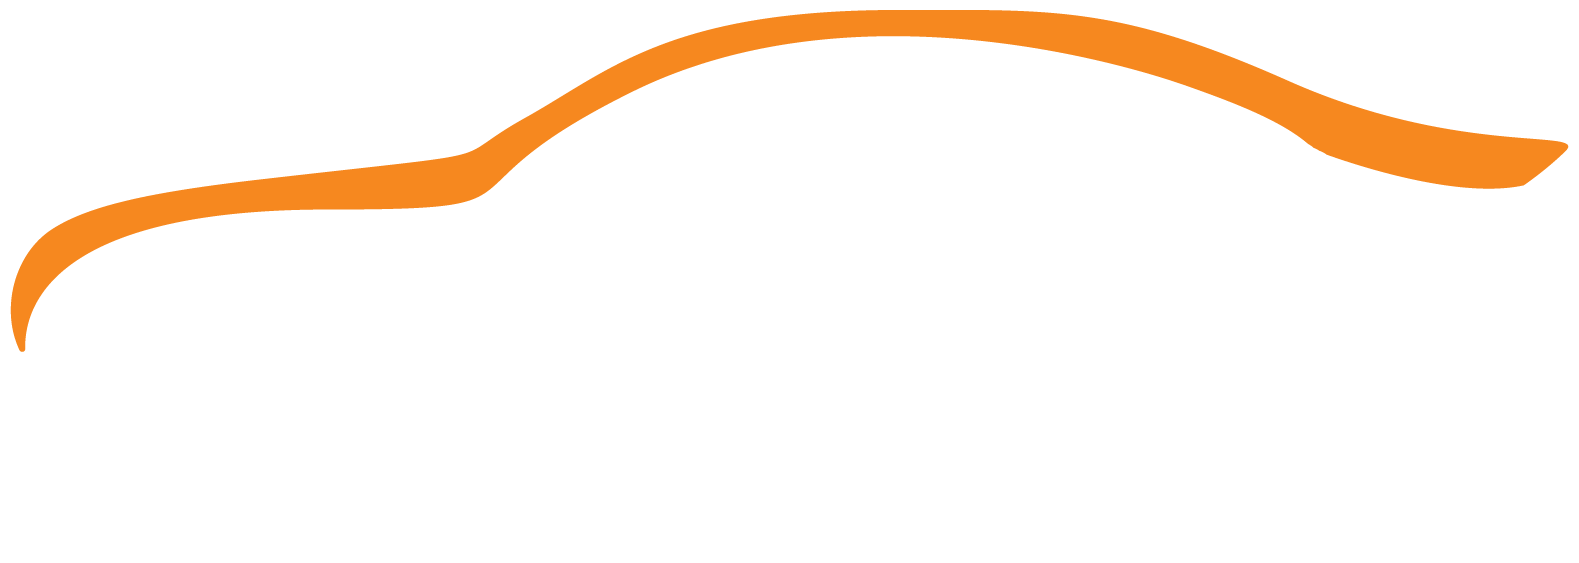 ecommotors - drive online growth